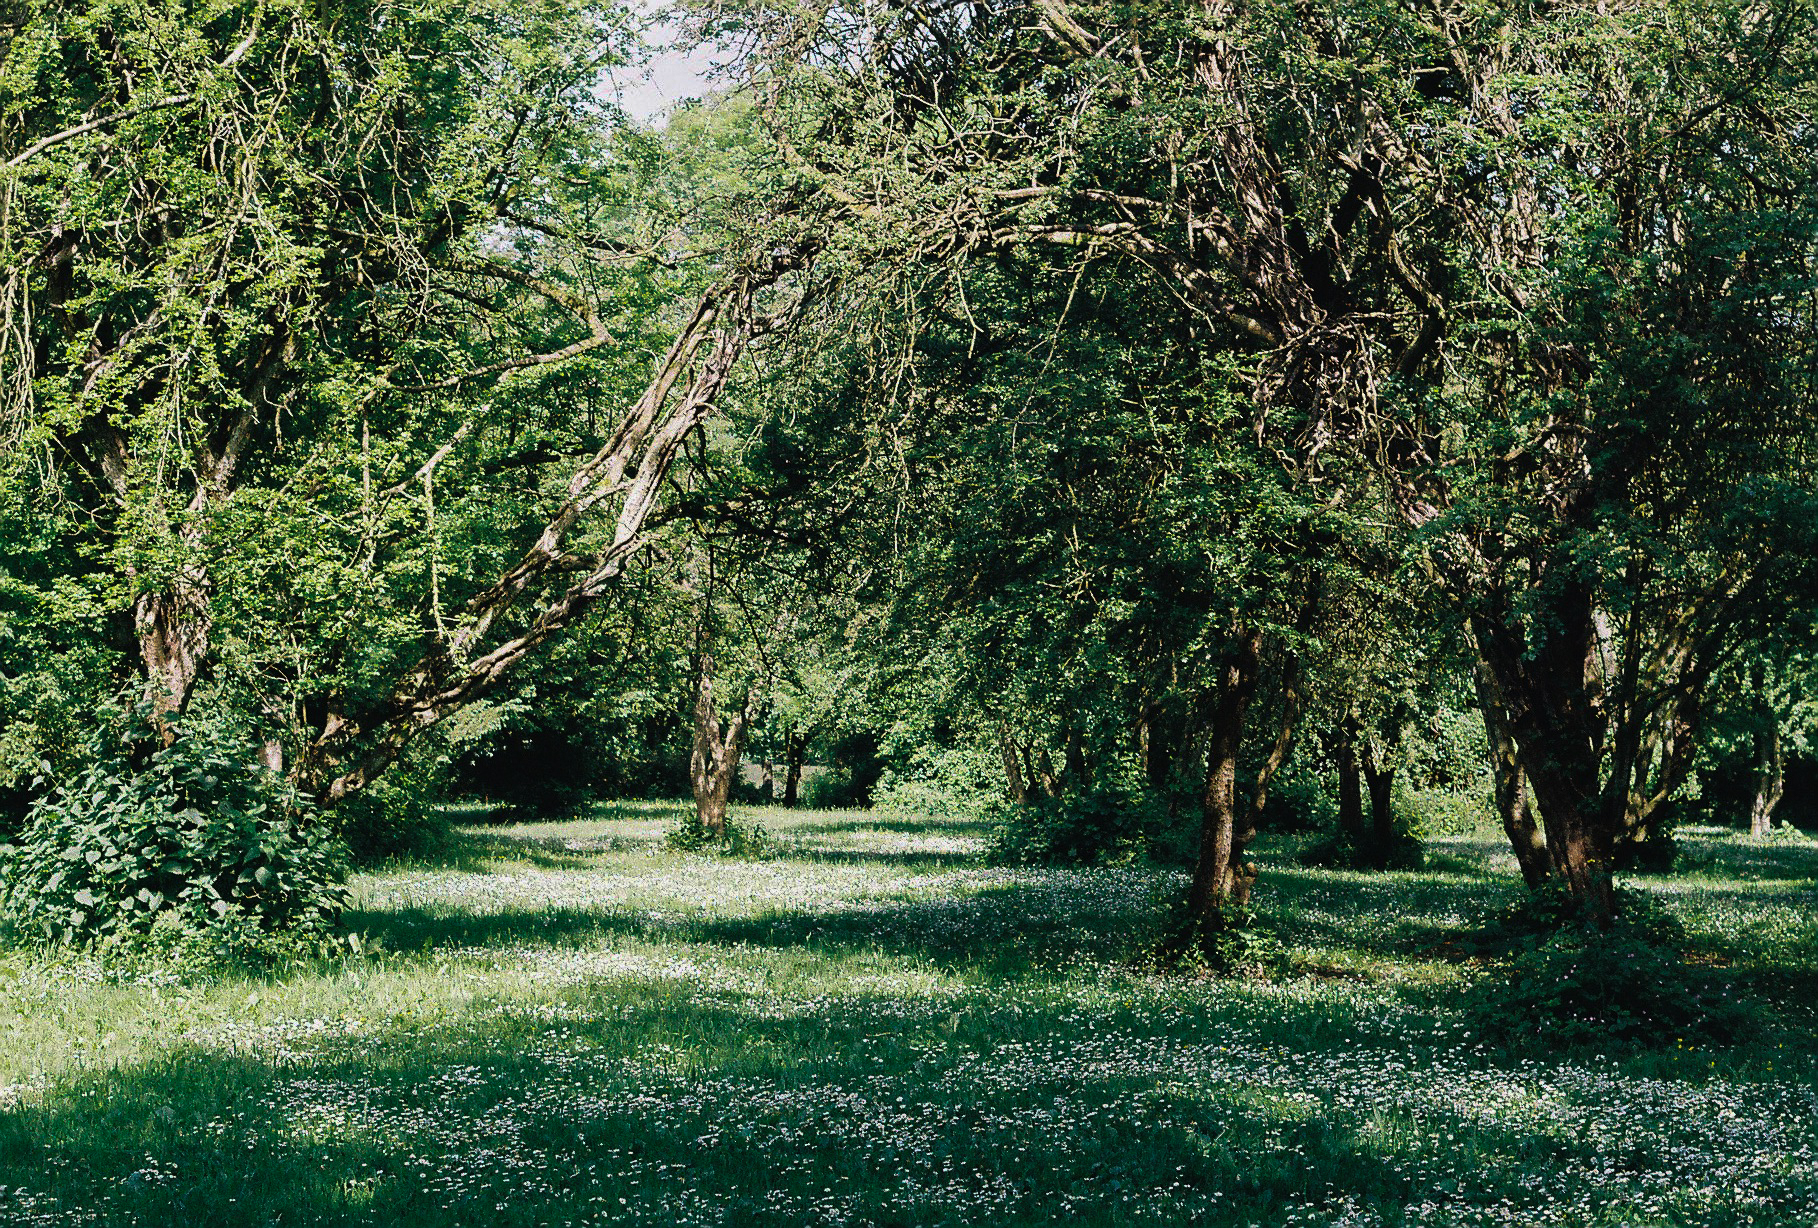 Woodlands on the Downs, Clifton, Bristol. May 2018 - Film photo Pentax K1000, Kodak Colour 250